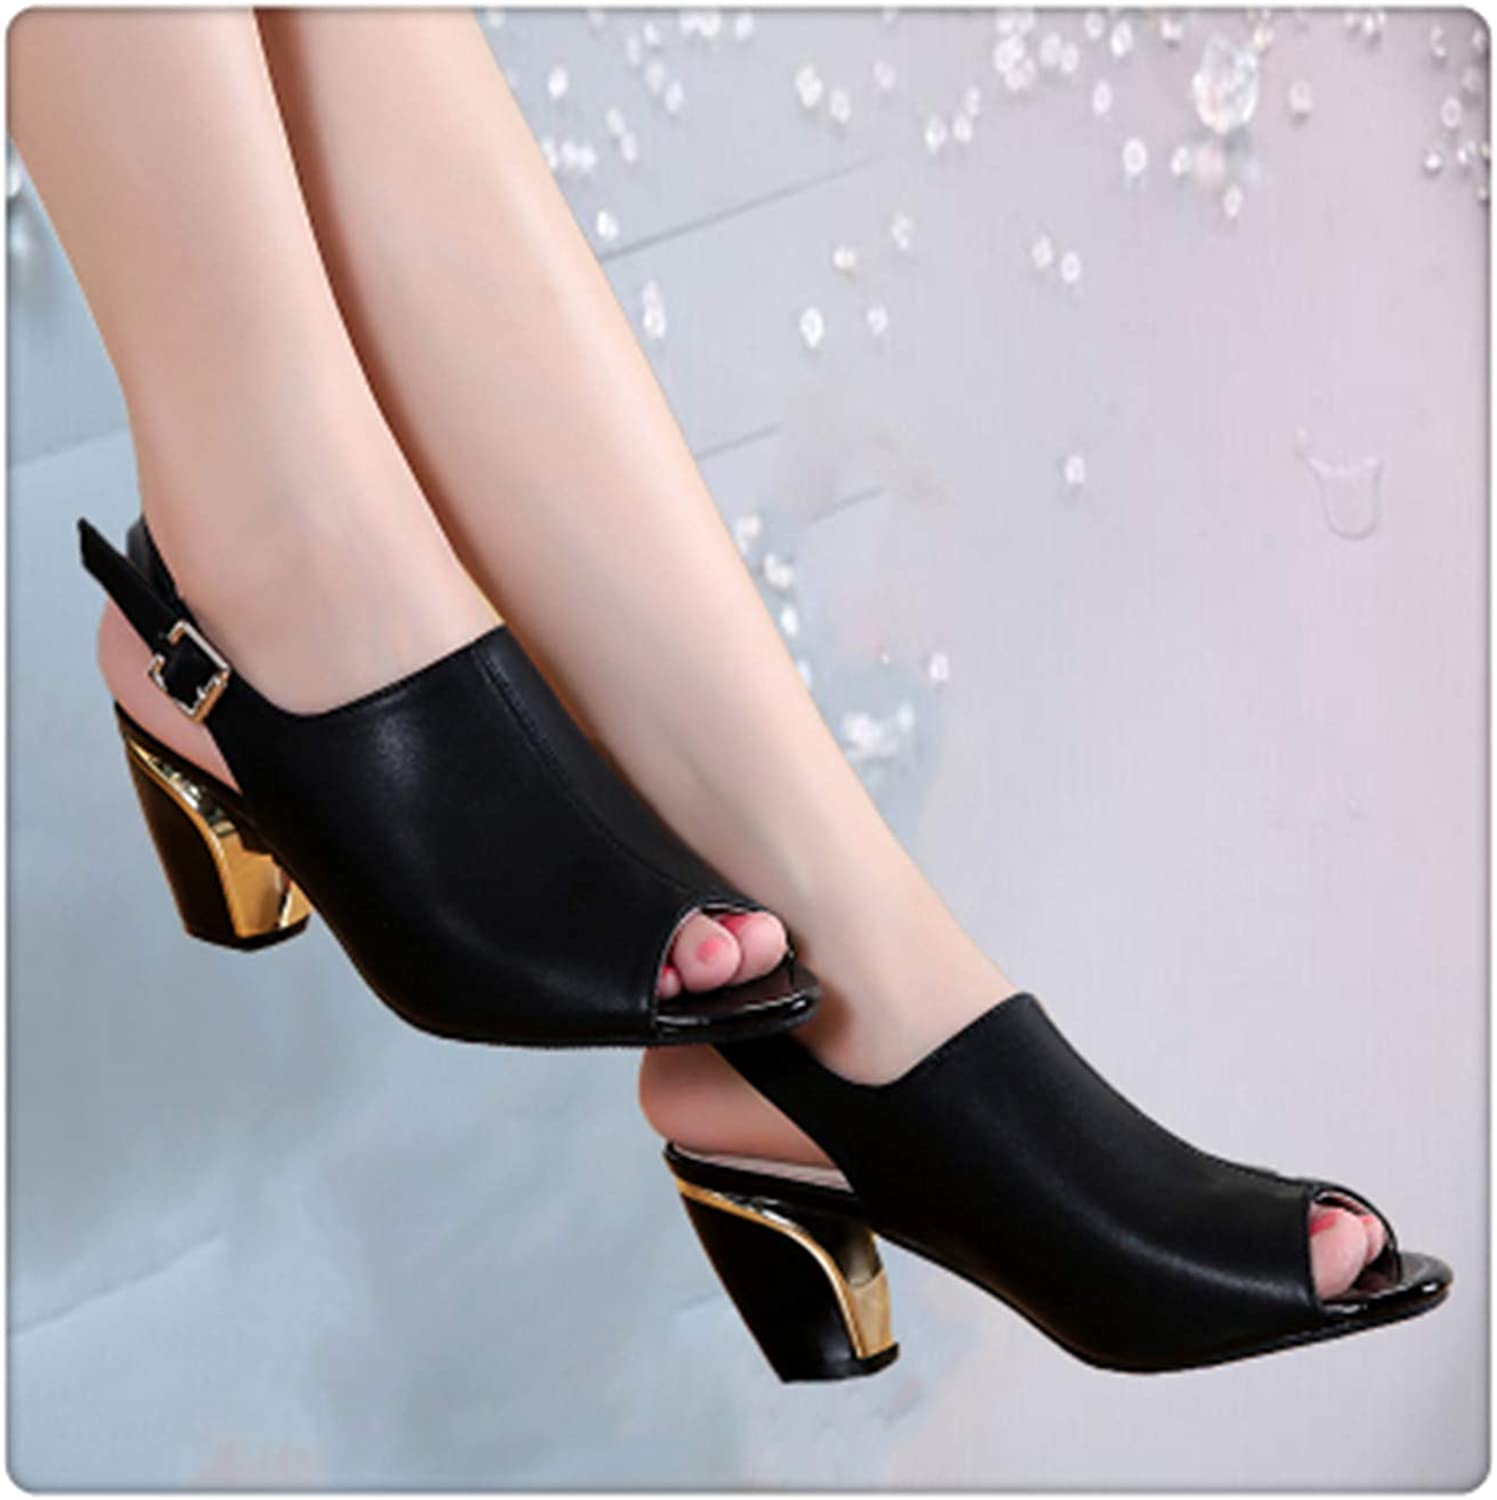 Yyixianma High Heels Sandals Women Leather Peep Toe Fashion Sandals Ladies Ankle-Strap Square Heels Cool Sandals AA20608 Black 4.5